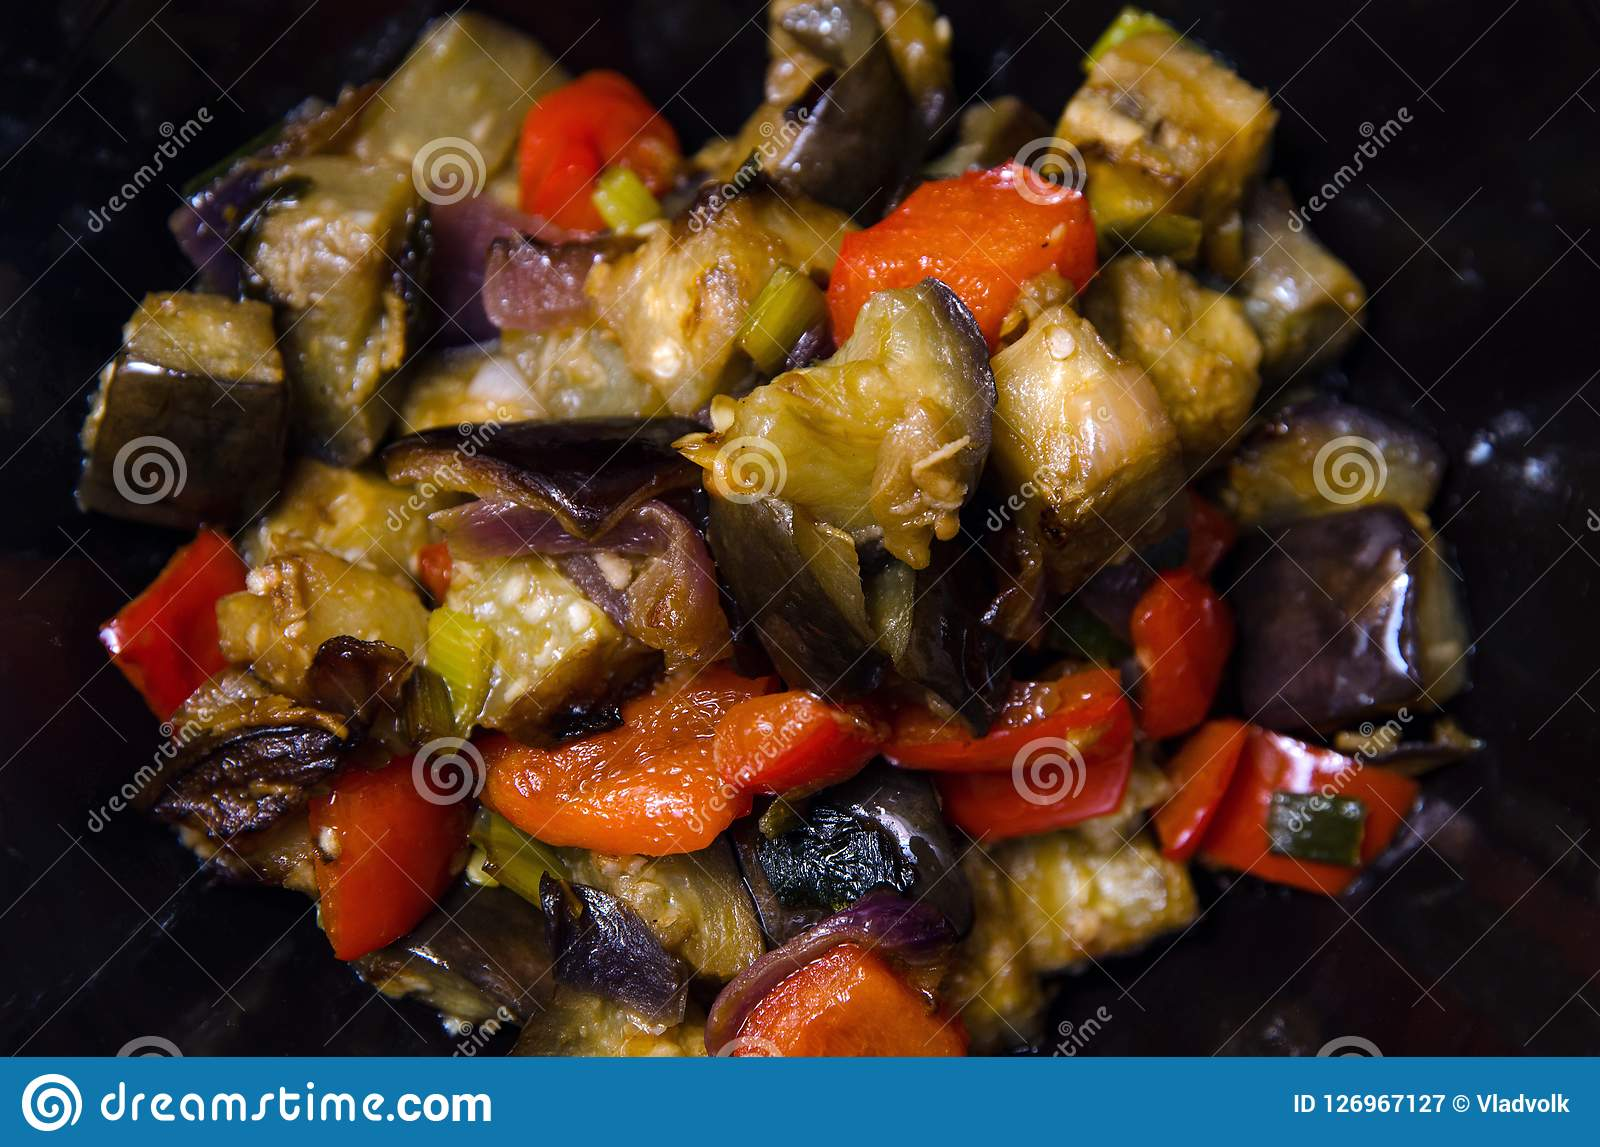 Eggplants and pepper with garlic, onion and soy sause, chinese recipe